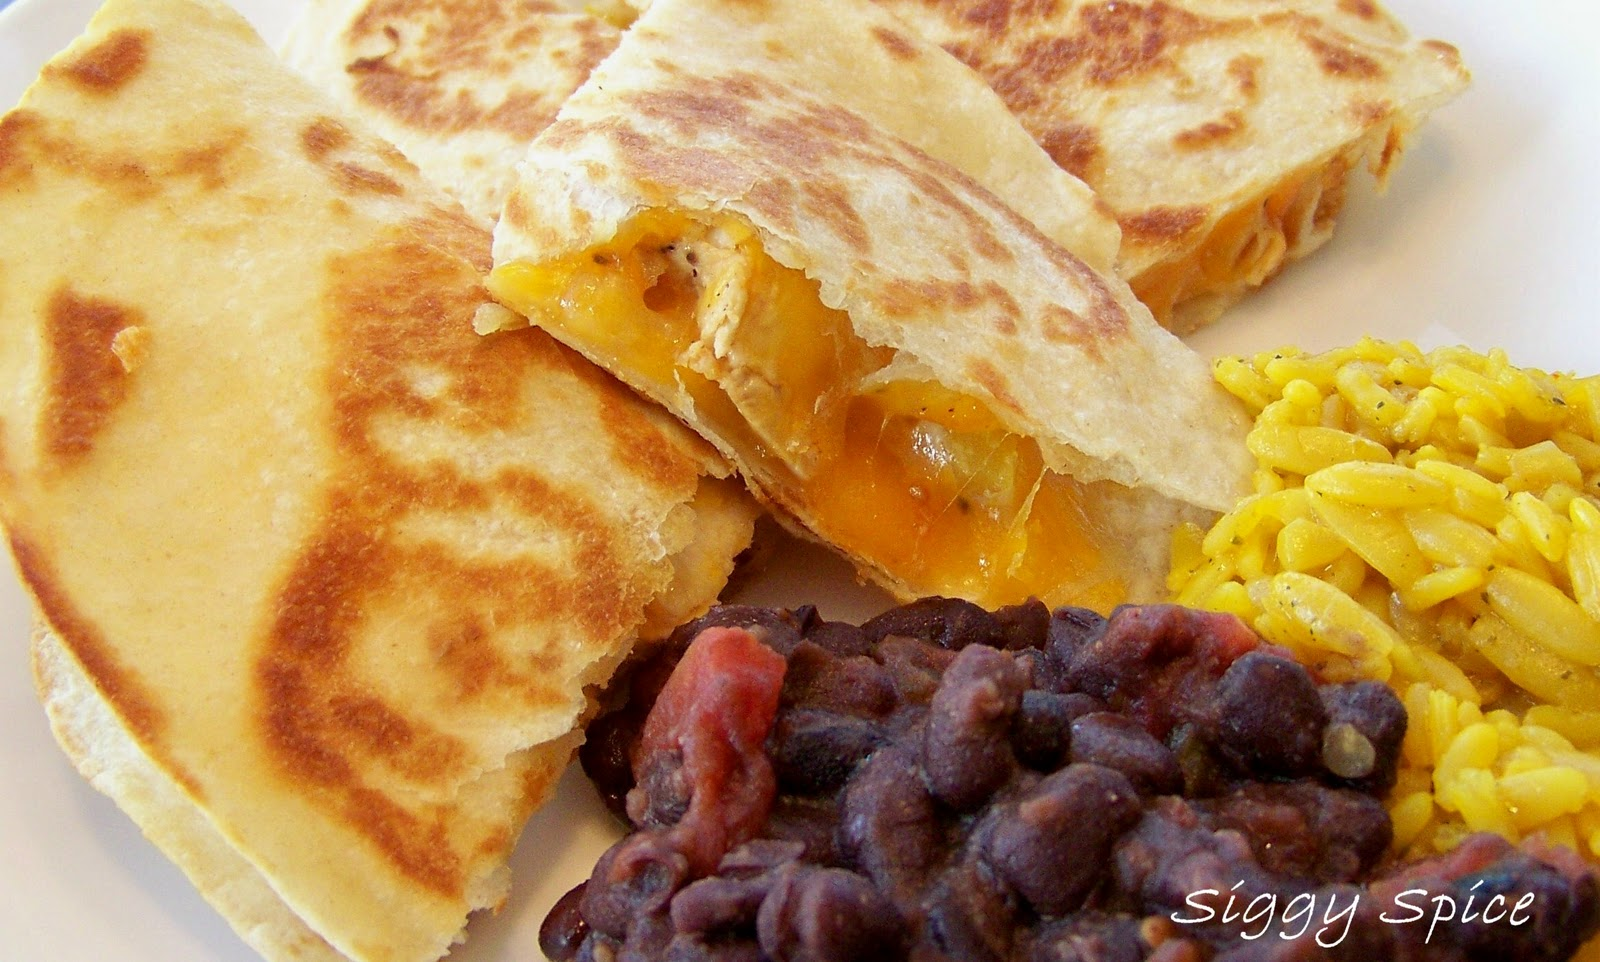 BBQ Chicken and Pineapple Quesadilla by Siggy Spice